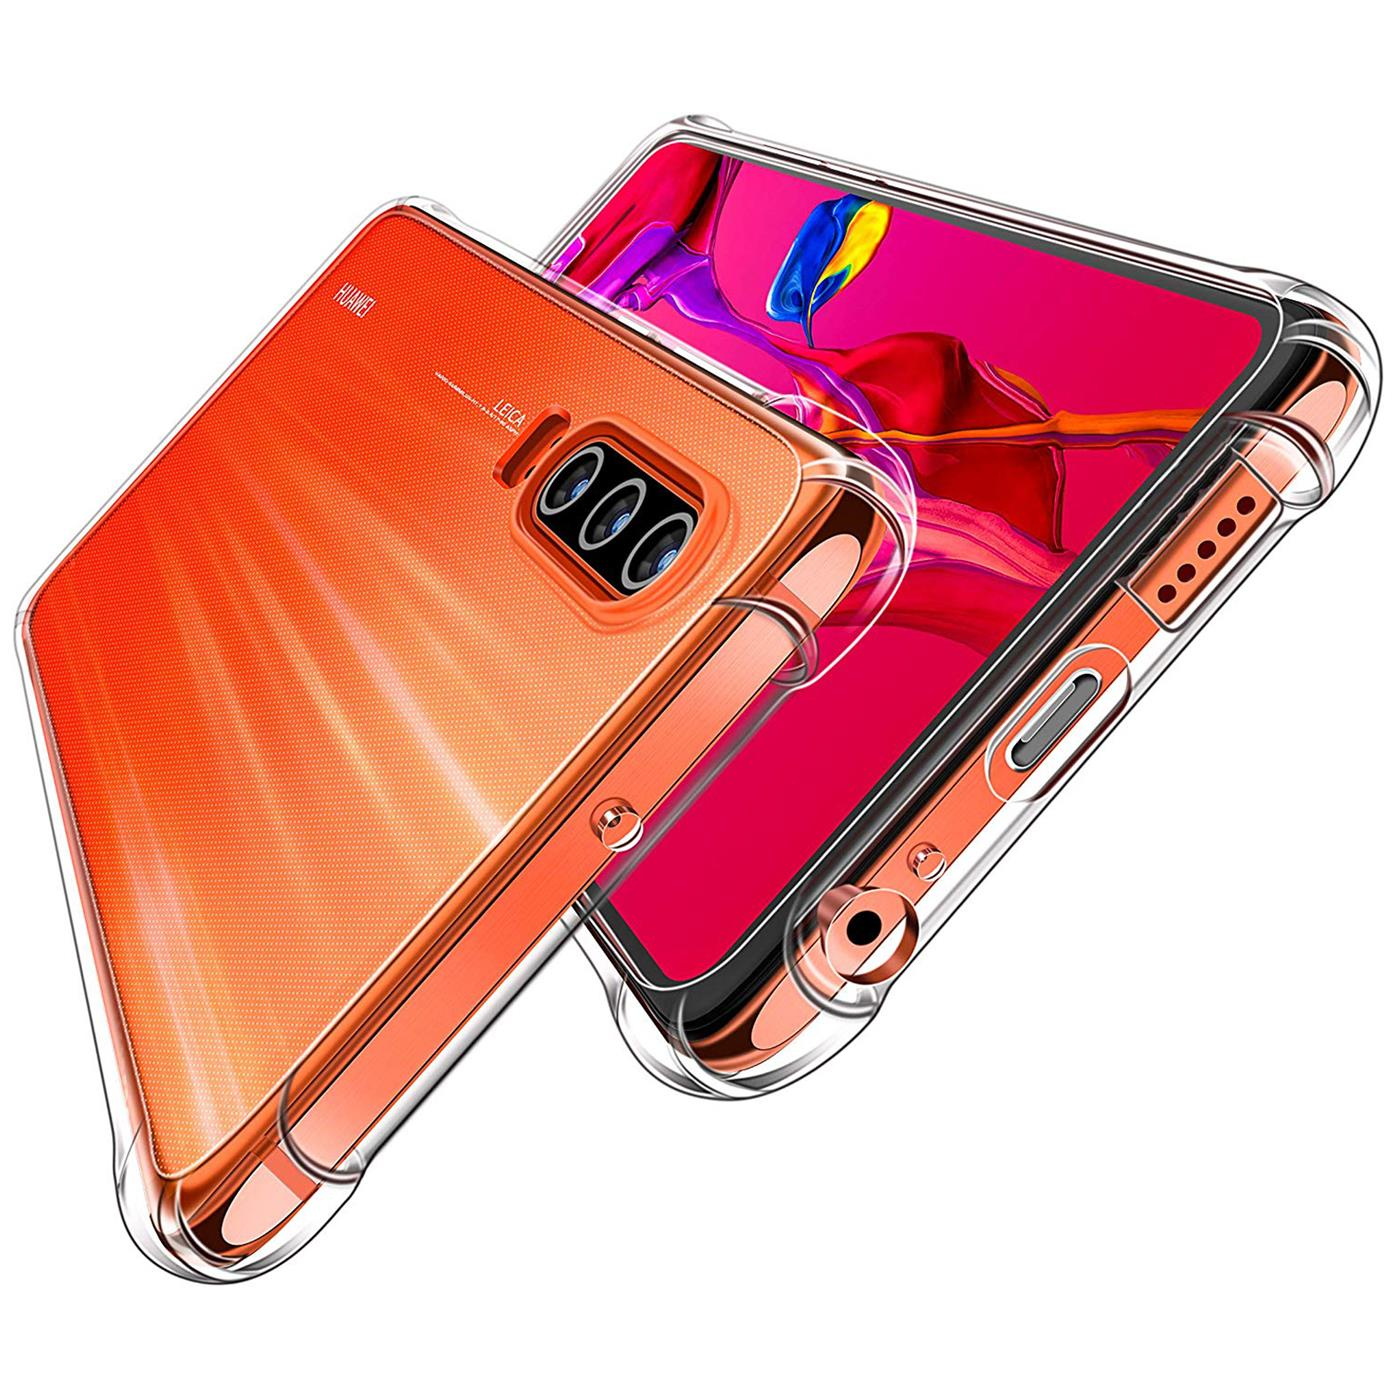 Huelle-fuer-Huawei-P30-Schutzhuelle-Anti-Shock-Handy-Case-Transparent-Cover Indexbild 10